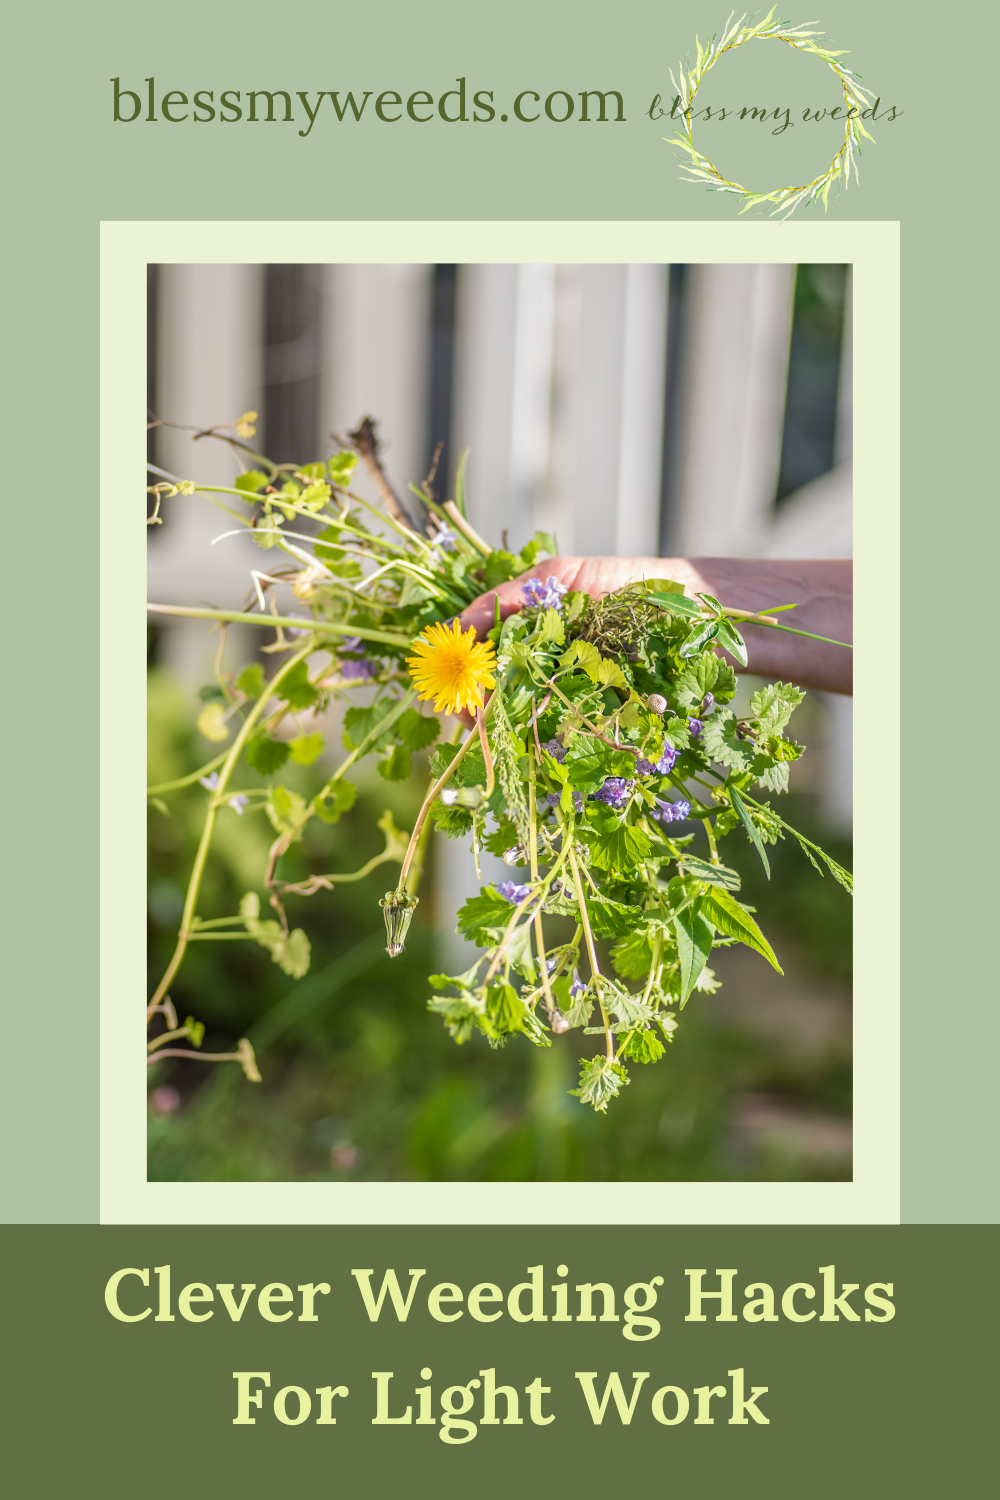 Blessmyweeds.com makes keeping healthy plants easy for anyone! Learn what to grow and how to care for it. Find the best hacks for keeping unwanted weeds out of your garden now!